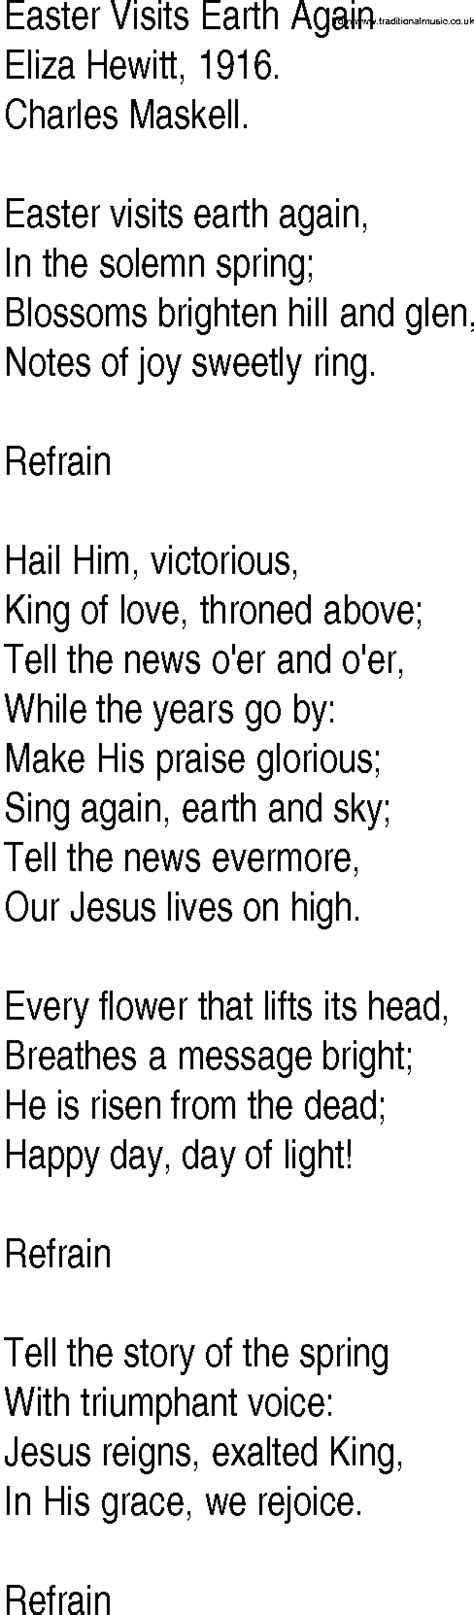 printable lyrics to easter parade contemporary easter songs christian images frompo